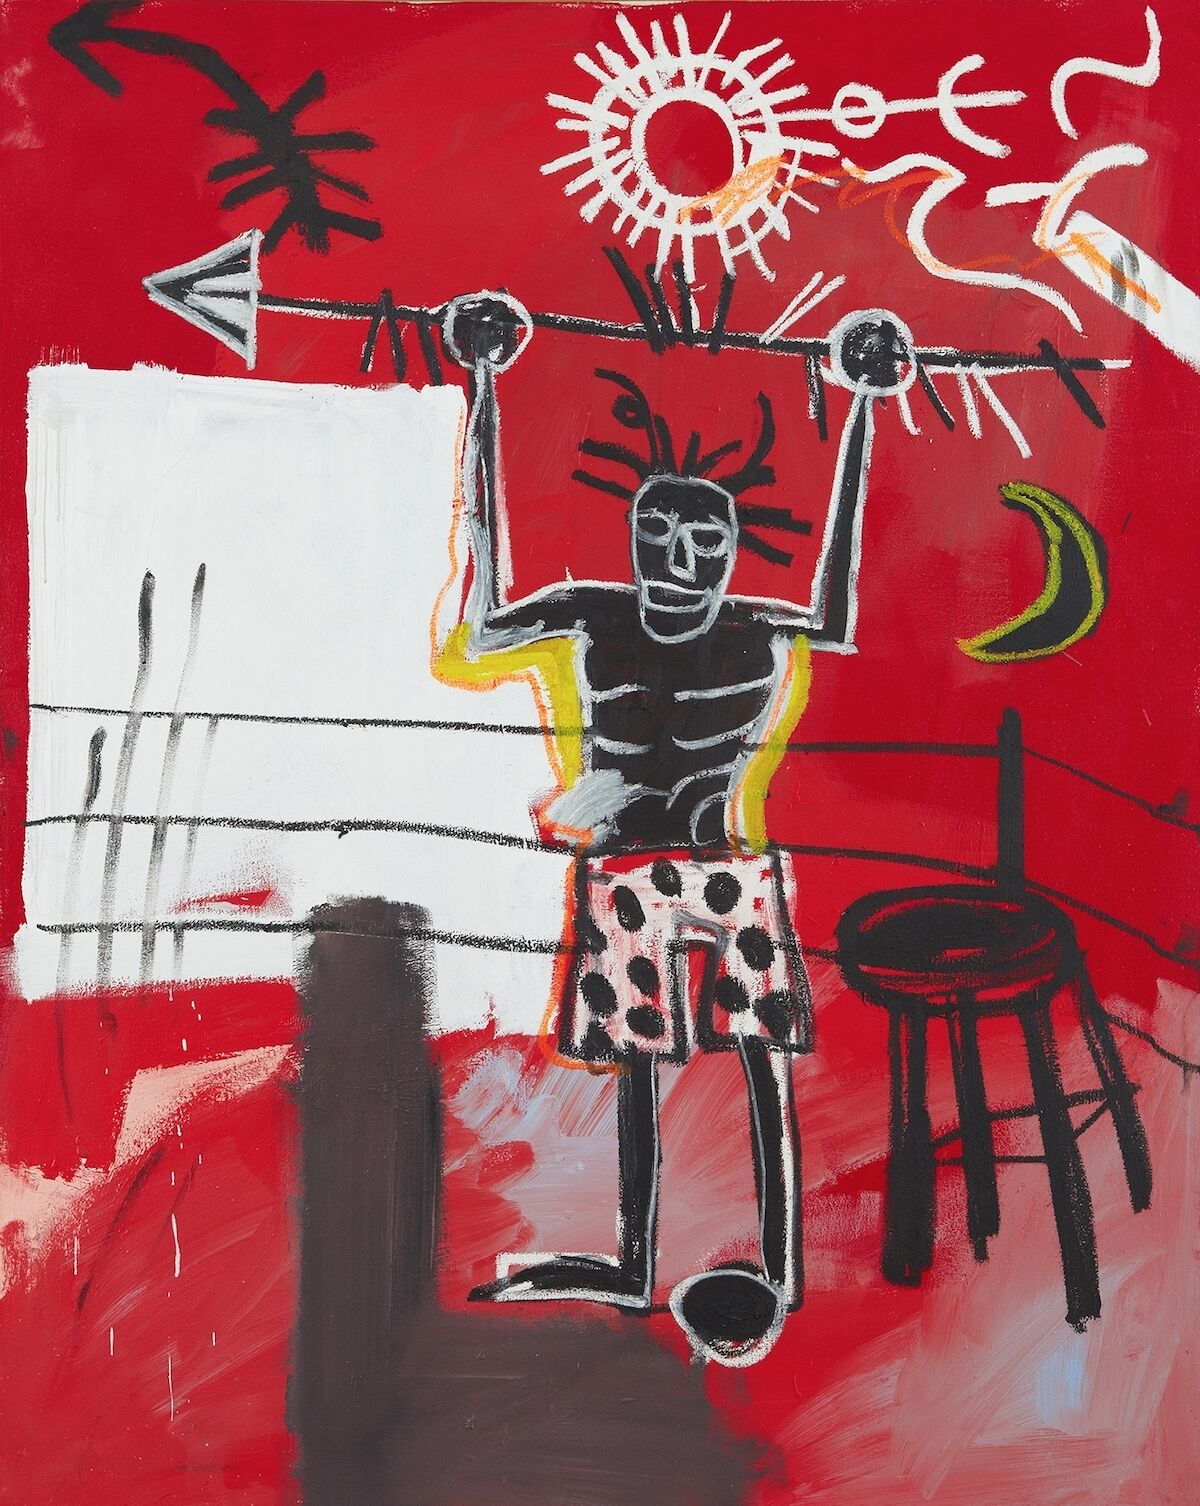 Jean-Michel Basquiat, The Ring, 1981. Sold for $15 million. Courtesy Phillips.